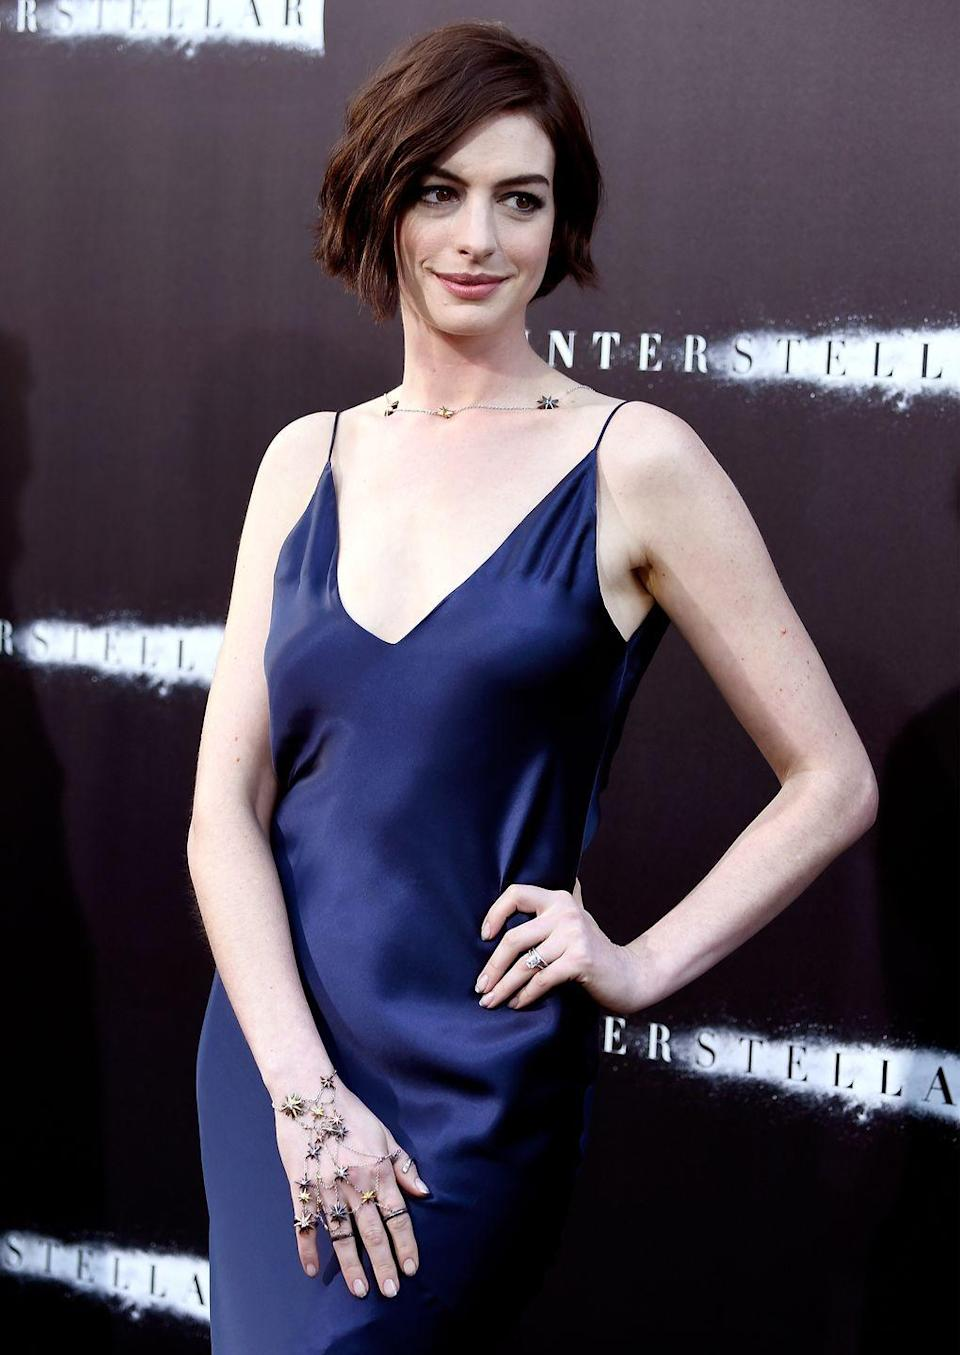 """<p>Anne Hathaway famously posted a picture of a pair of jeans she'd cut into shorts on <a href=""""https://www.instagram.com/p/BI3w8DYD2KH/?hl=en&taken-by=annehathaway"""" rel=""""nofollow noopener"""" target=""""_blank"""" data-ylk=""""slk:Instagram"""" class=""""link rapid-noclick-resp"""">Instagram</a> a few months after giving birth to son Jonathan in 2016. """"There is no shame in gaining weight during pregnancy (or ever),"""" she wrote. </p><p>""""There is no shame if it takes longer than you think it will to lose the weight (if you want to lose it at all). There is no shame in finally breaking down and making your own jean shorts because last summer's are just too dang short for this summer's thighs. Bodies change. Bodies grow. Bodies shrink. It's all love (don't let anyone tell you otherwise.)"""" YES.</p>"""